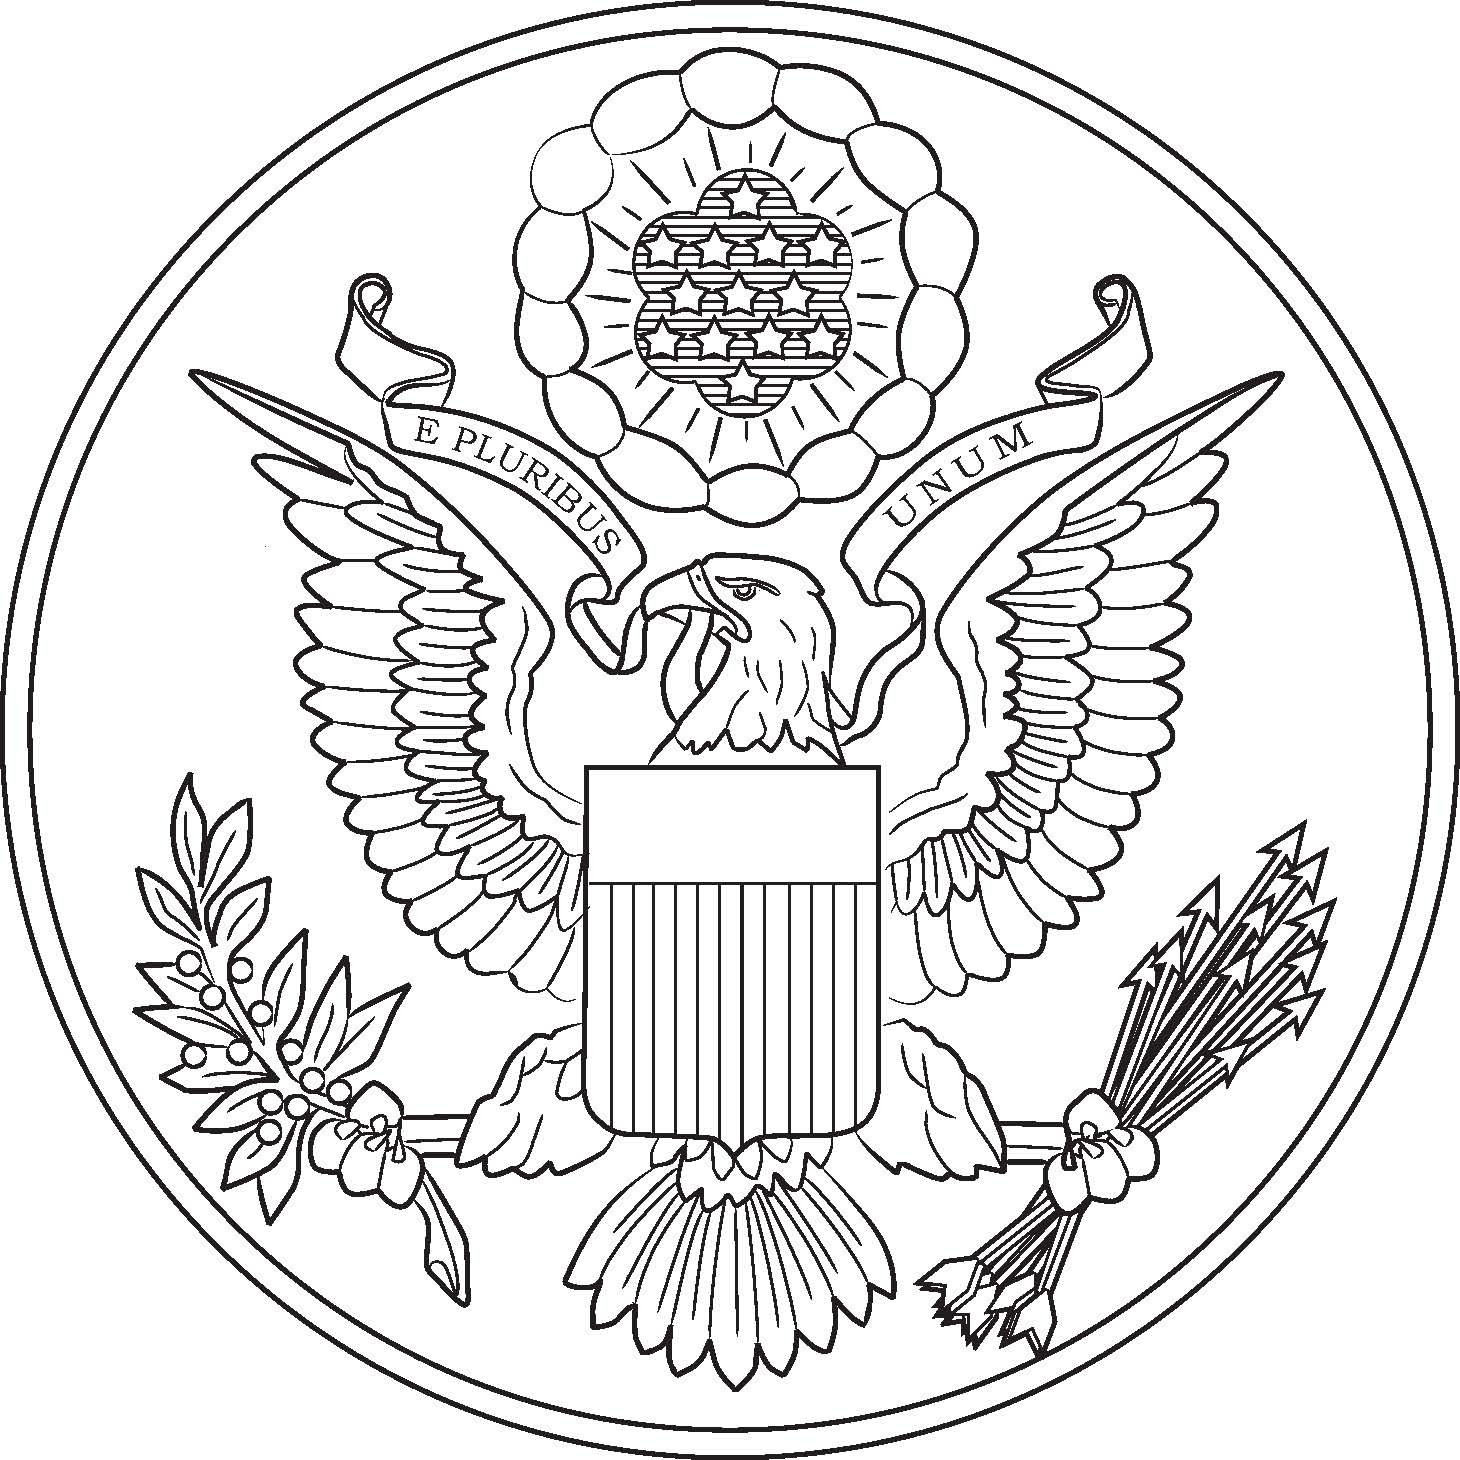 1460x1460 Coloring Pages Washington Dc Coloring Pages